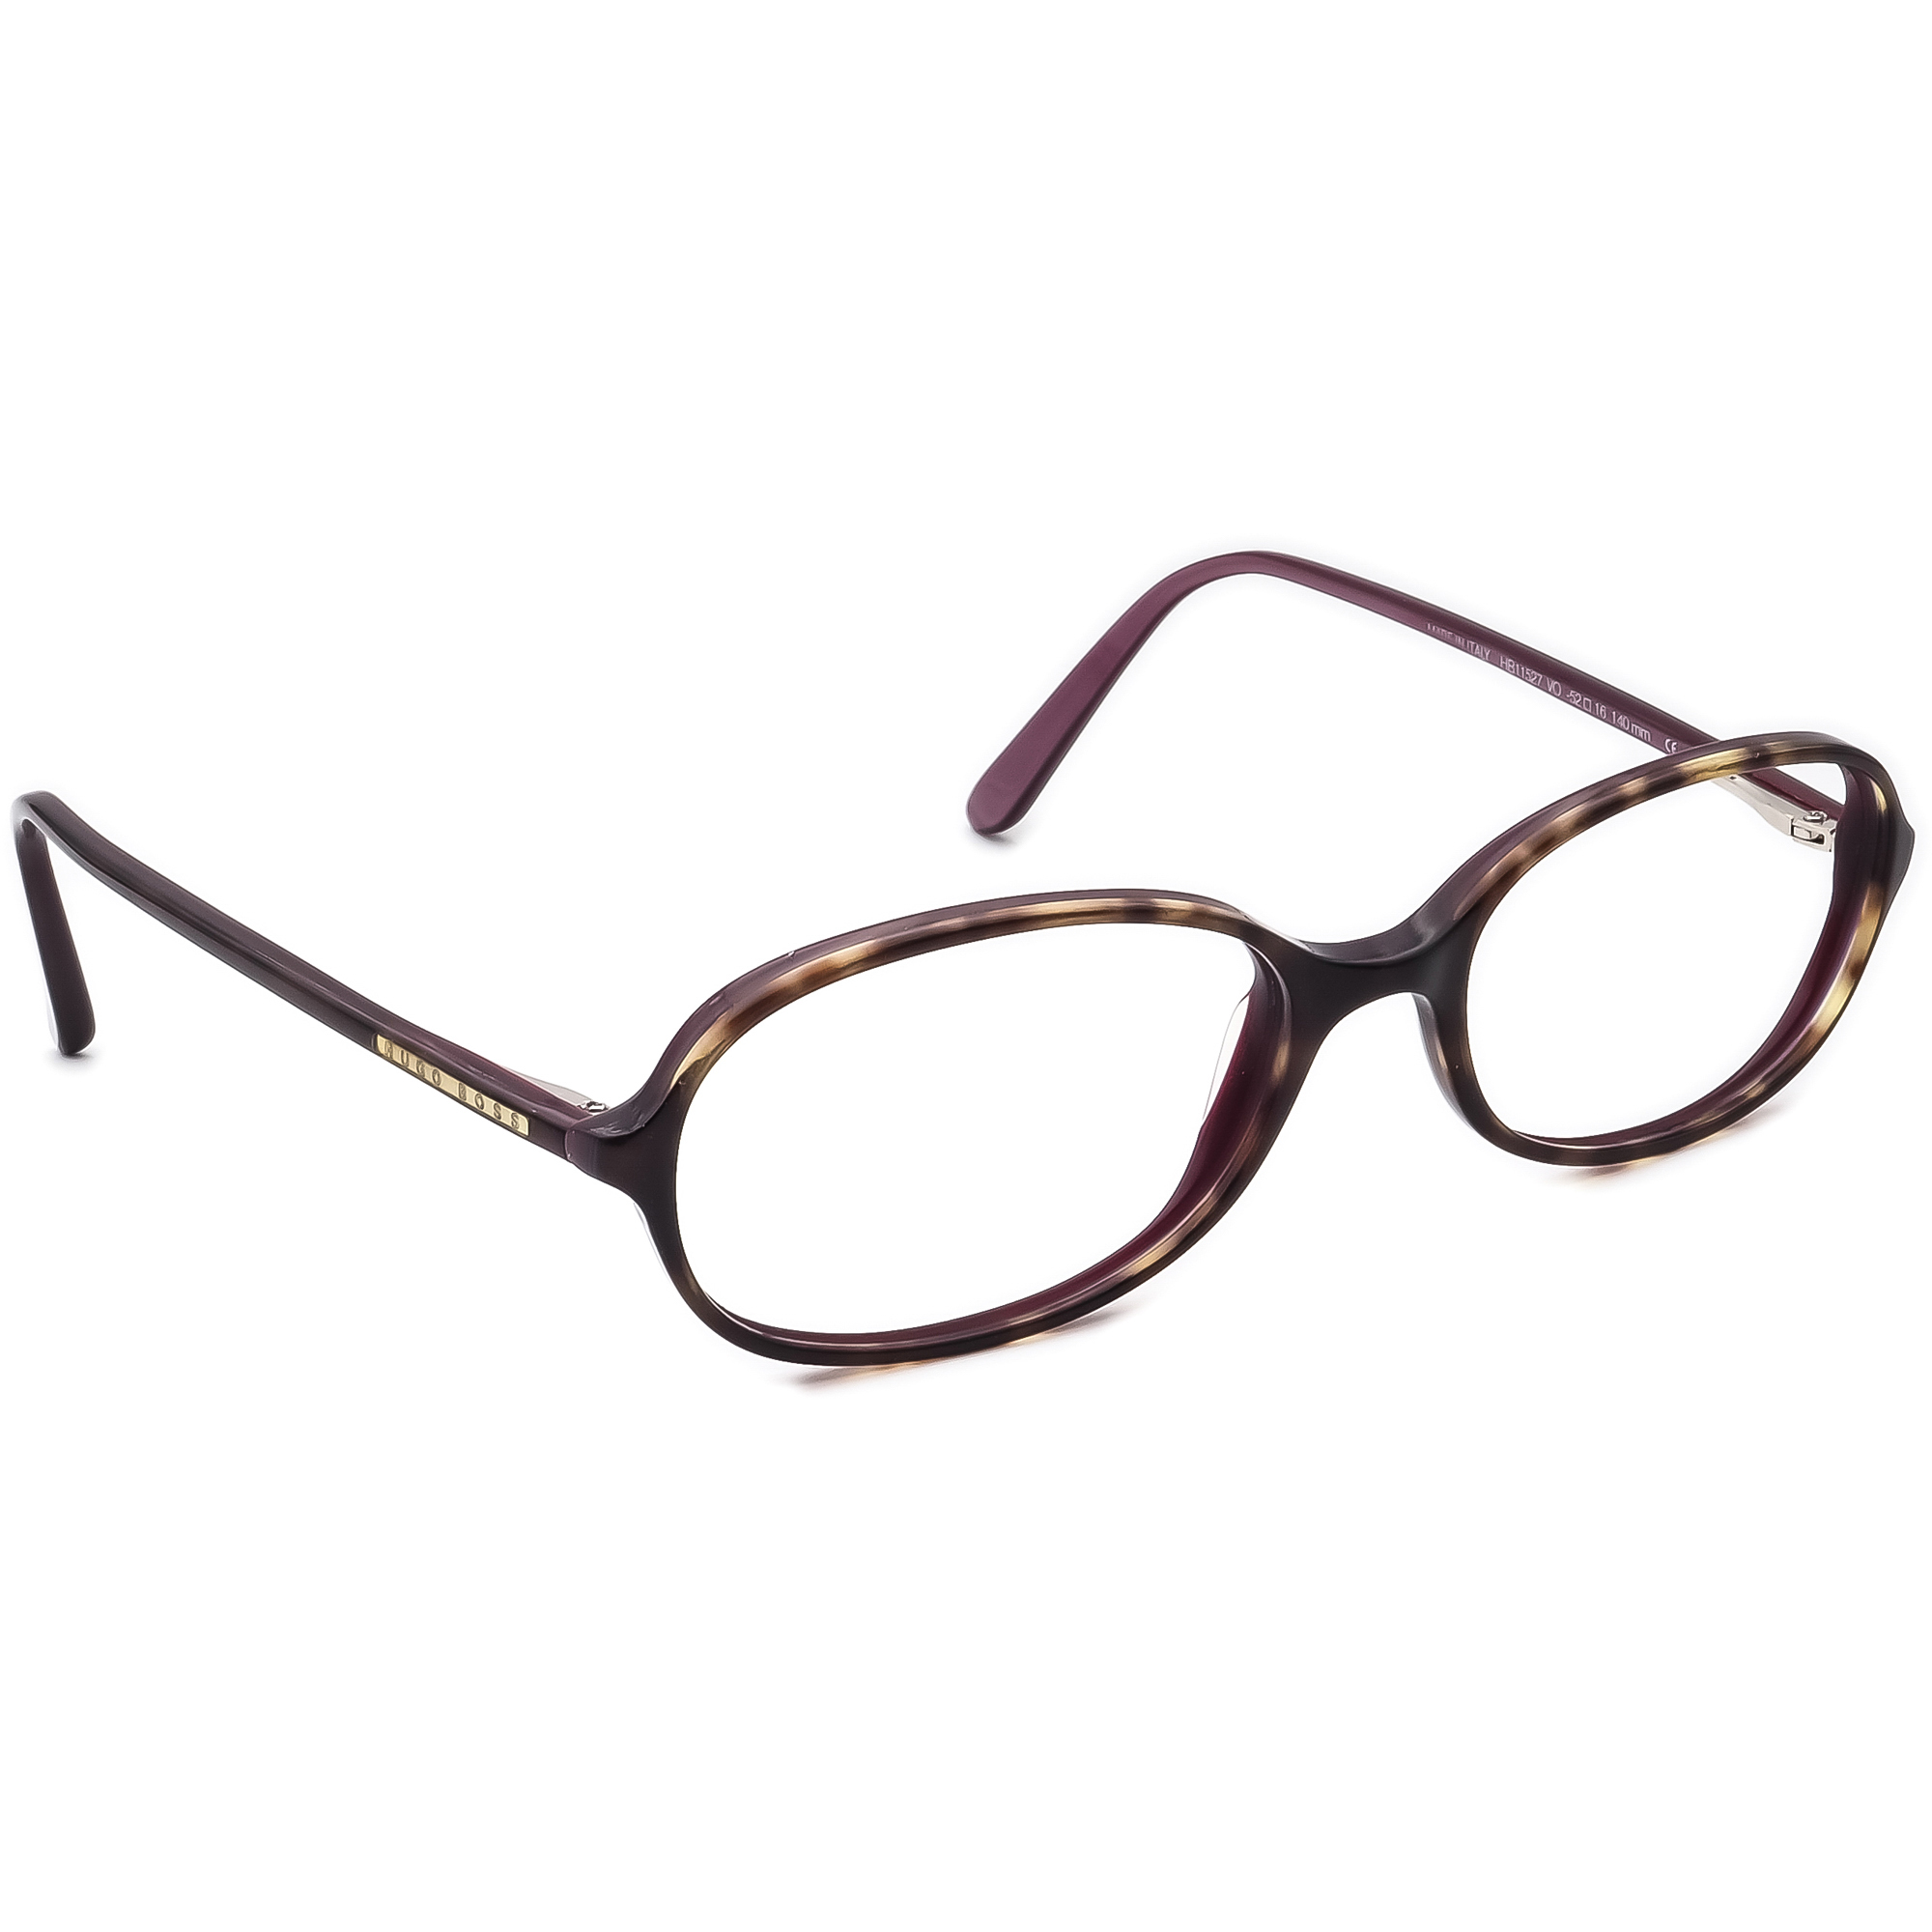 Hugo Boss HB11527 VO Eyeglasses